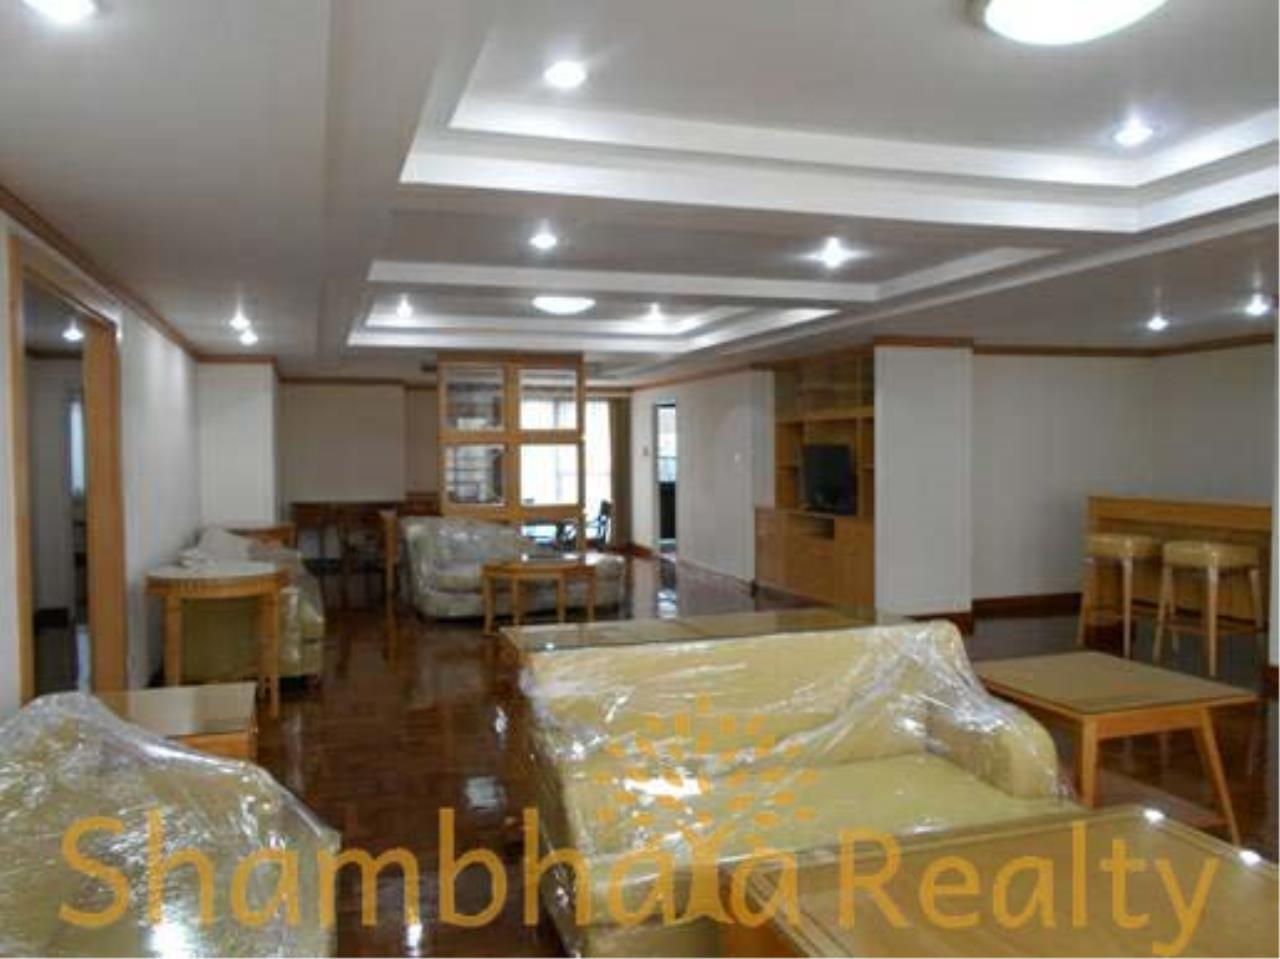 Shambhala Realty Agency's Apartment For Rent Condominium for Rent in Sukhuvmit 24 14